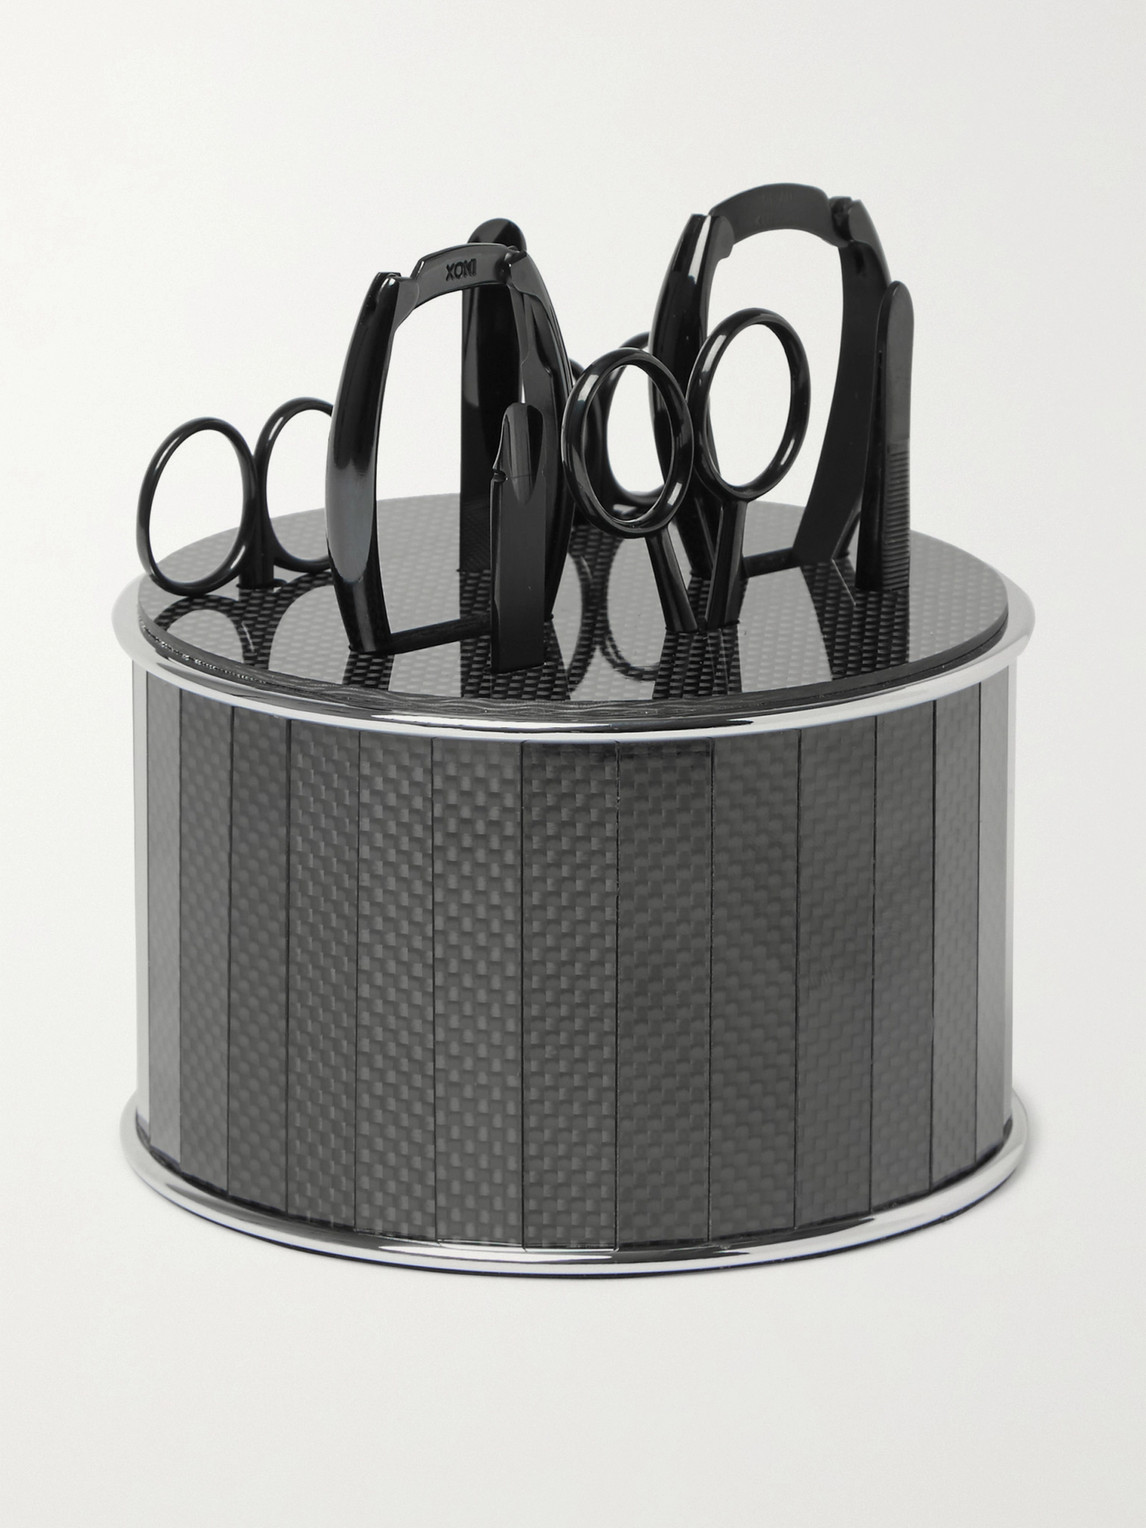 Bamford Grooming Department Stainless Steel And Carbon Fibre Manicure Set In Black